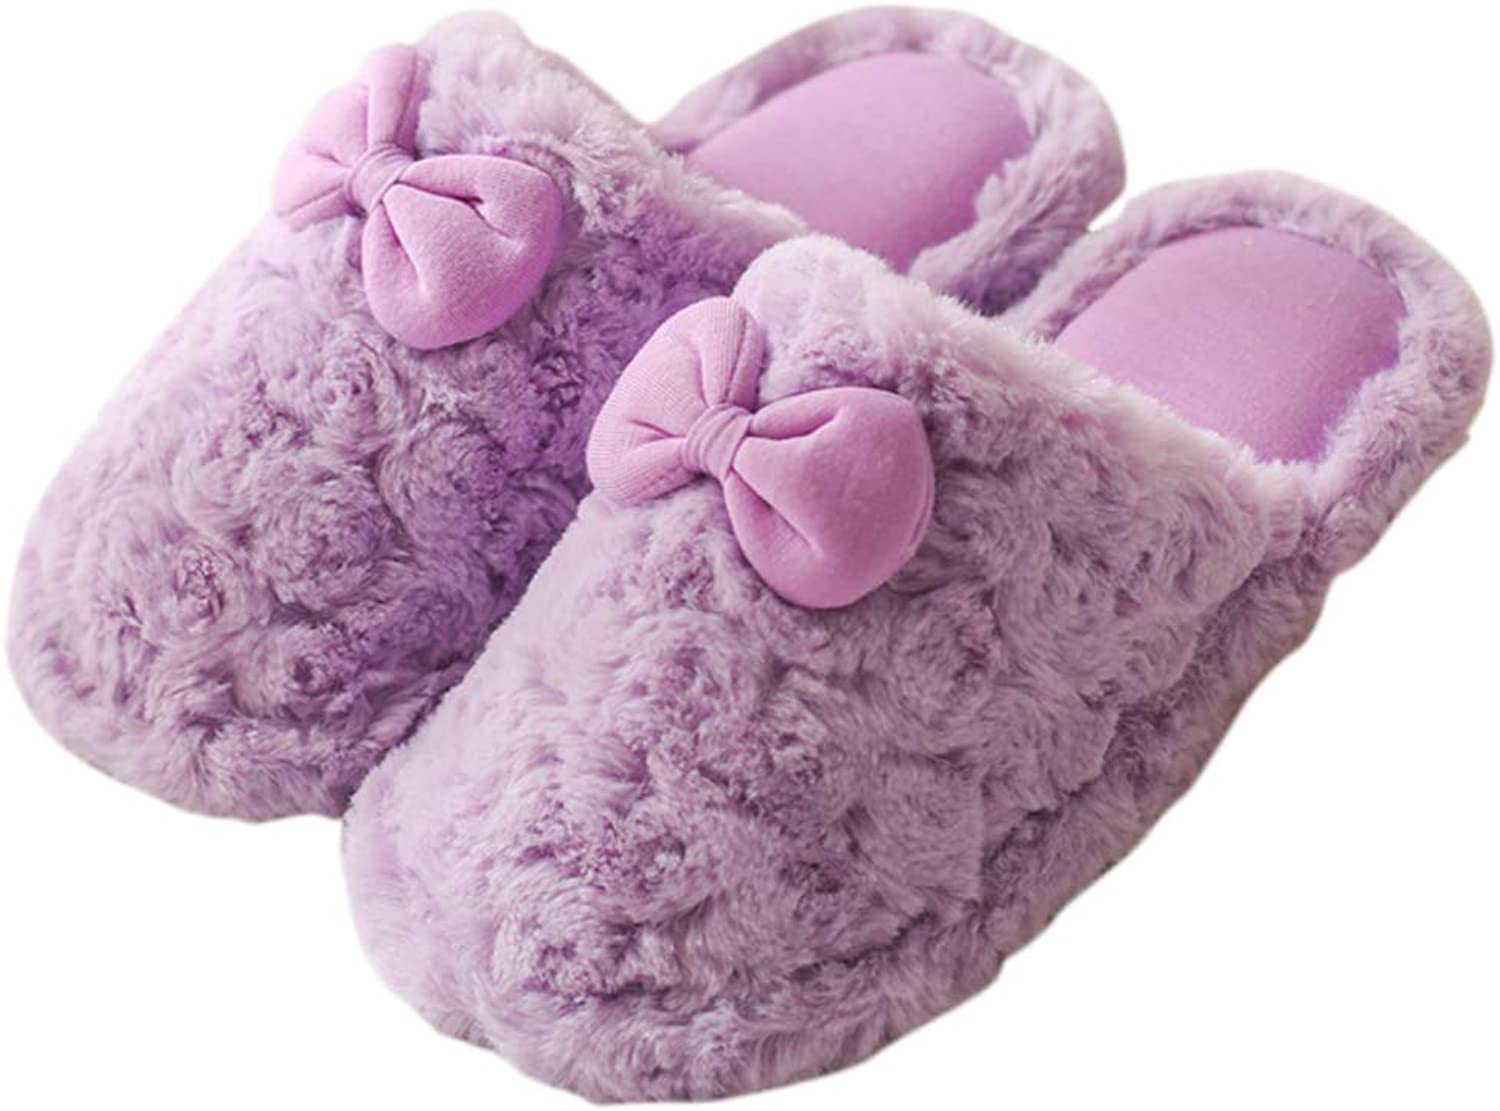 HUYP Sweet Cute Cotton Slippers Autumn and Winter Indoor Non-Slip Fashion Female Home (color   Purple, Size   6 US)